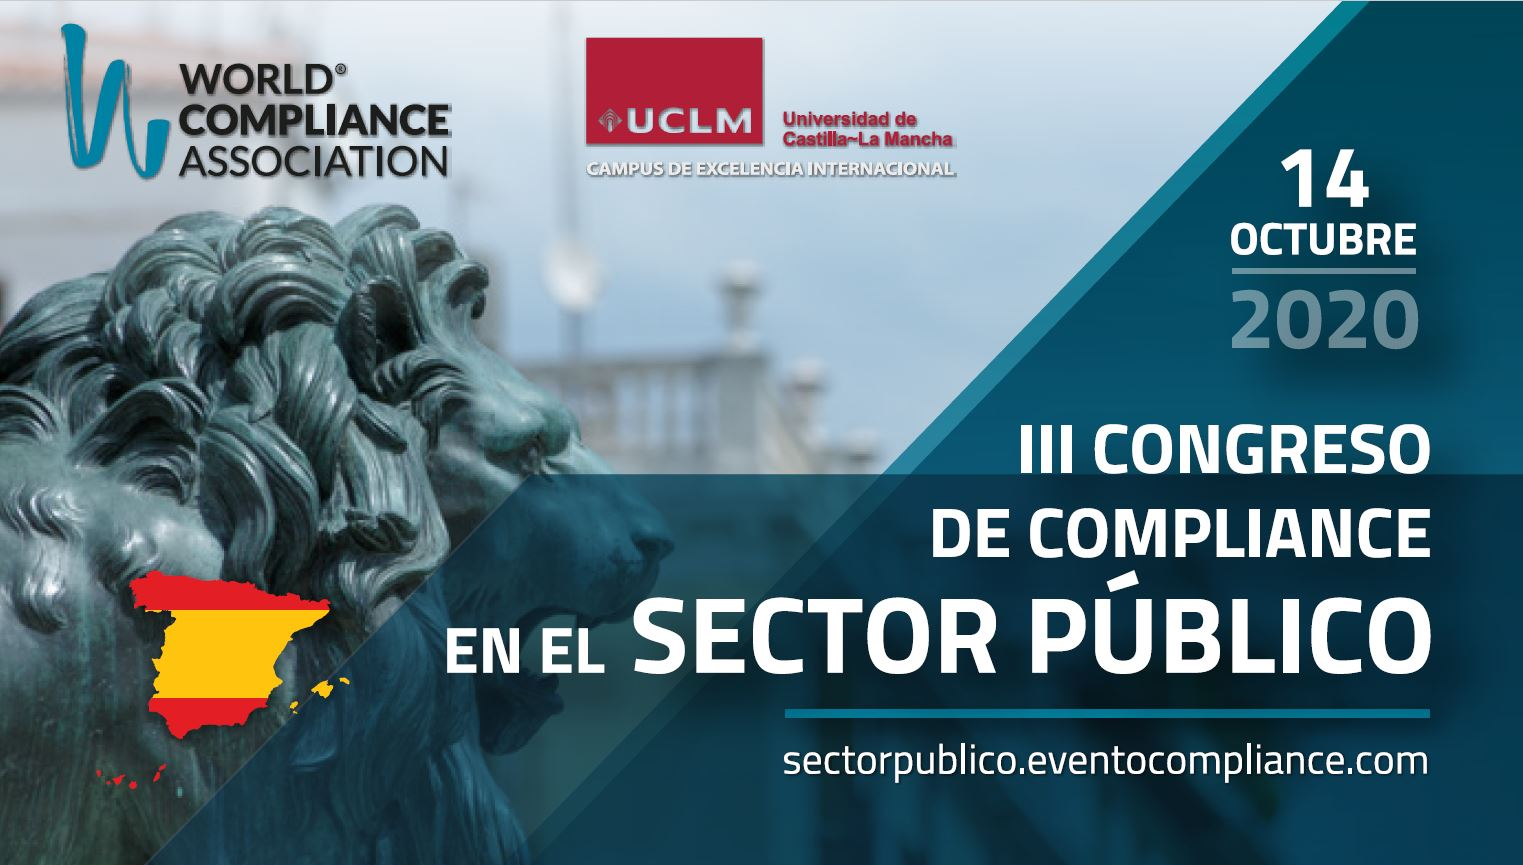 http://sectorpublico.eventocompliance.com/